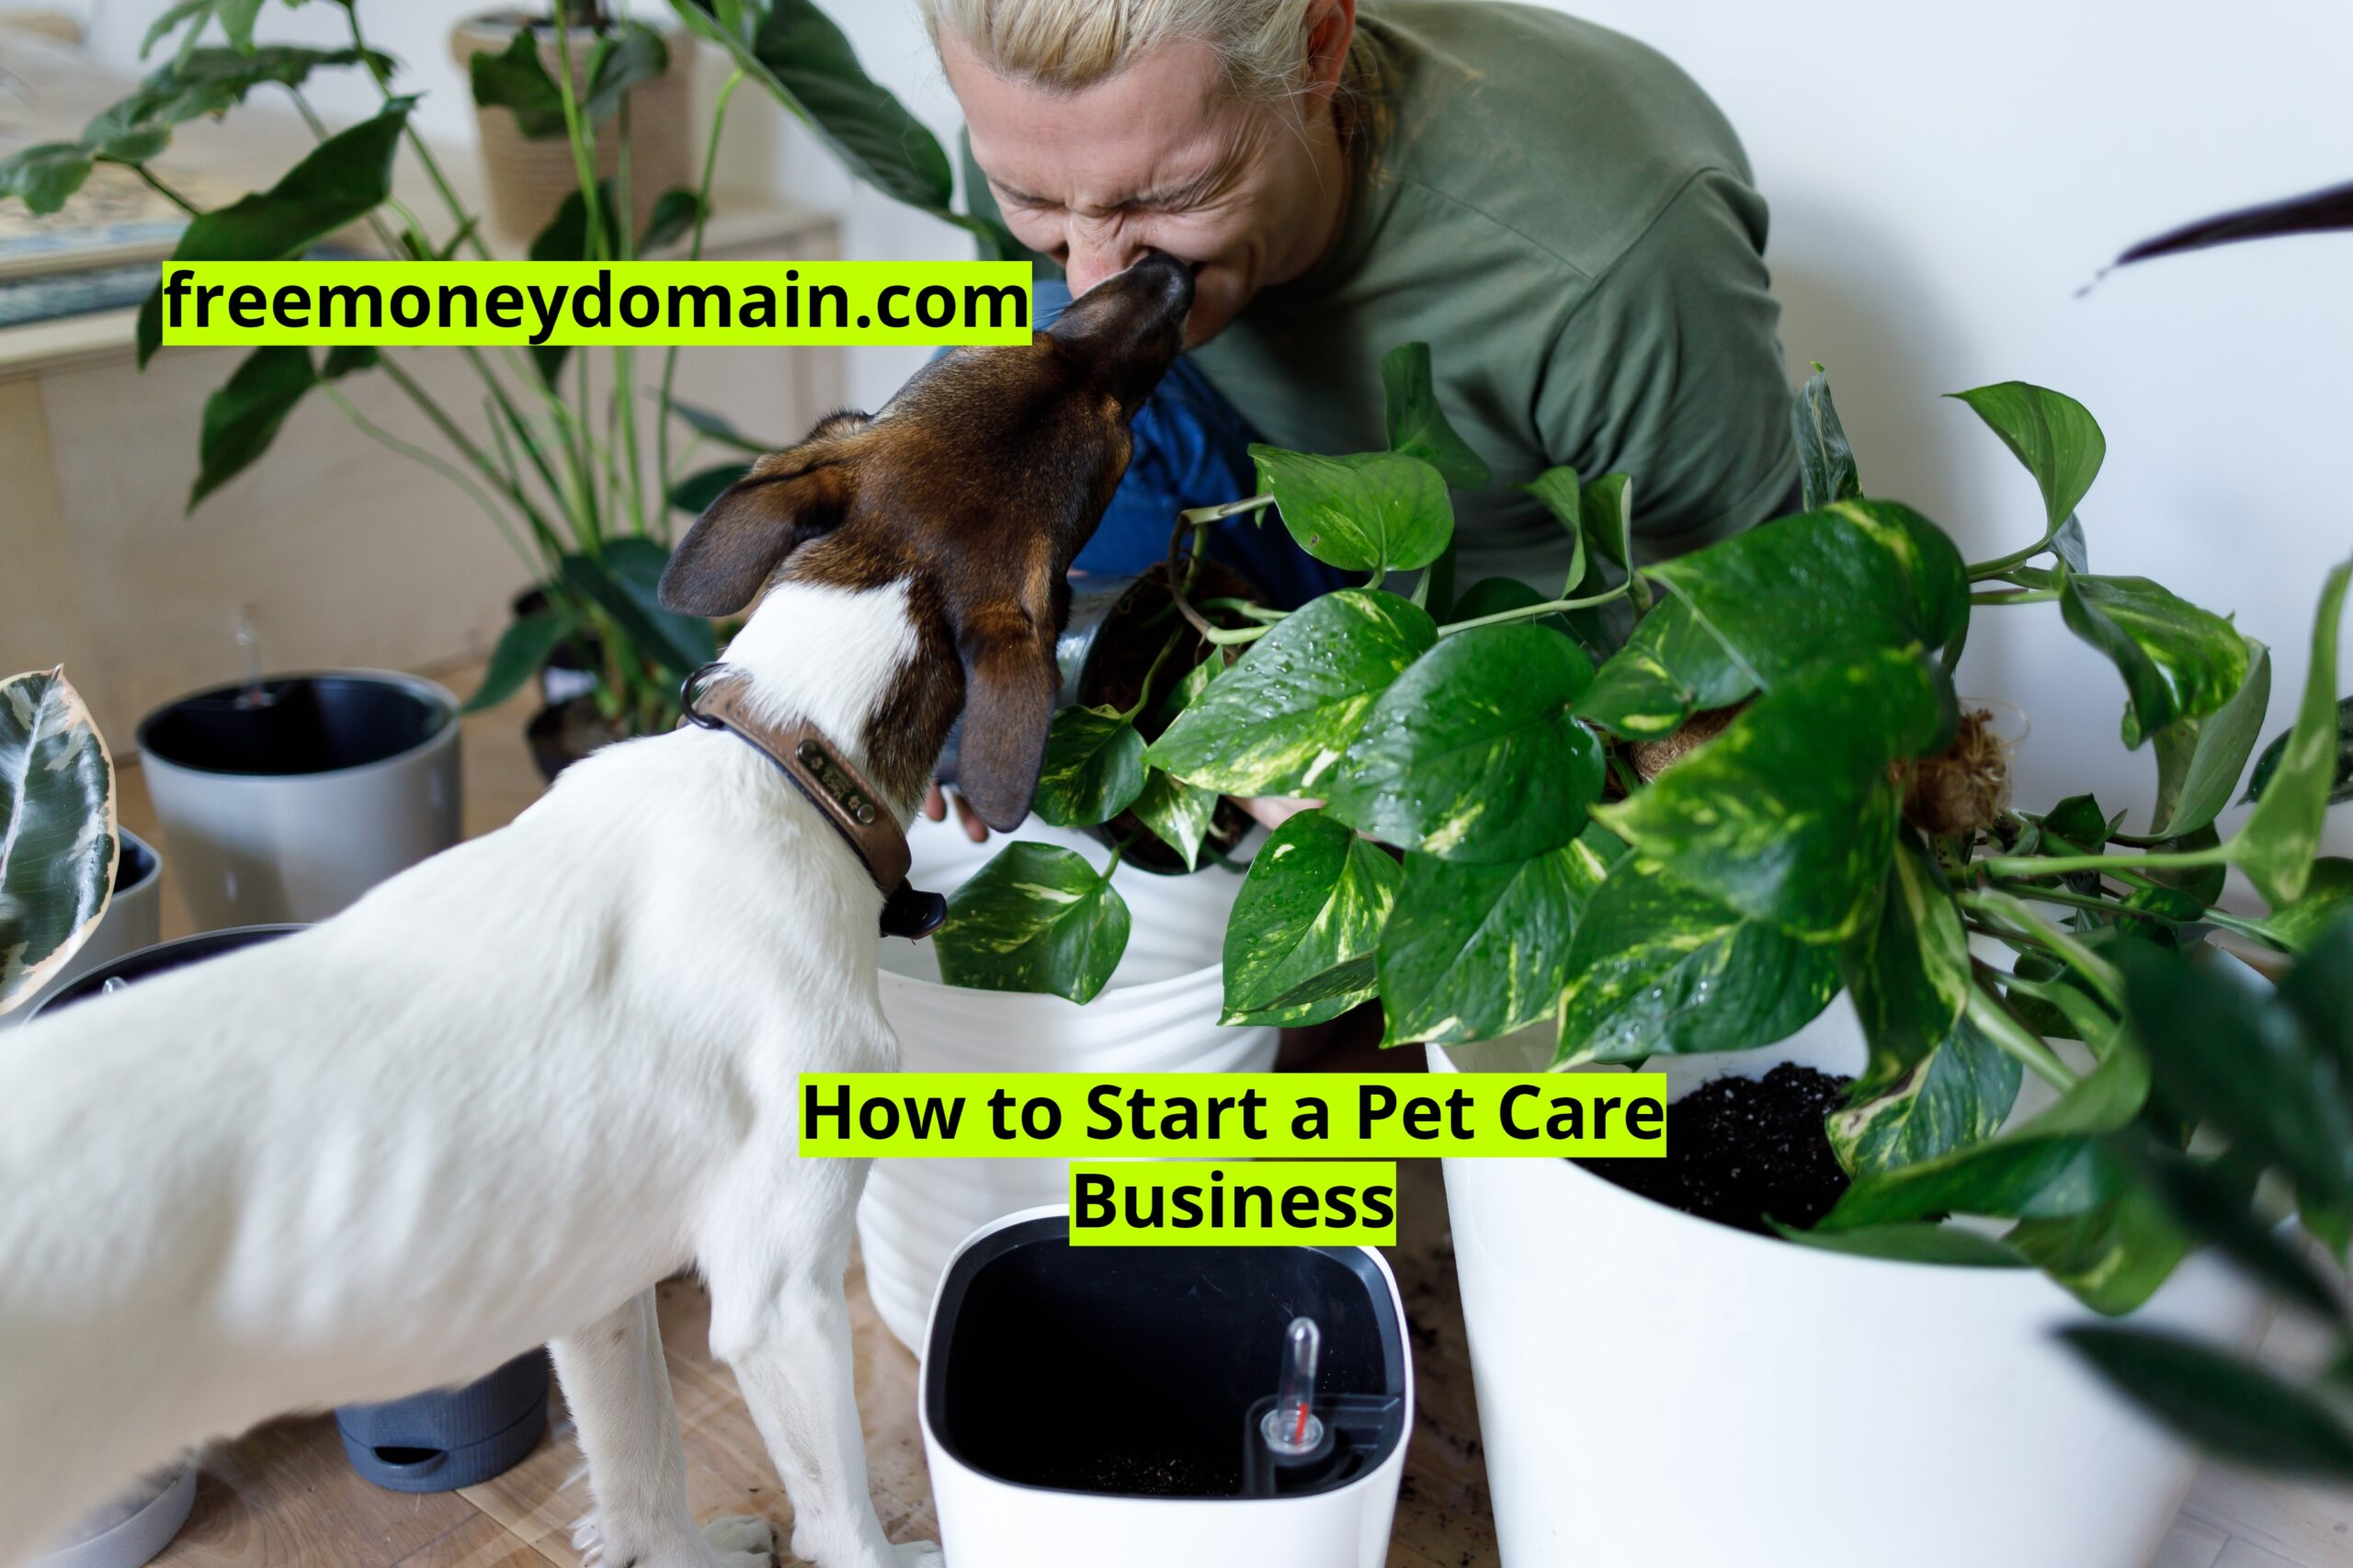 How to Start a Pet Care Business in 2021